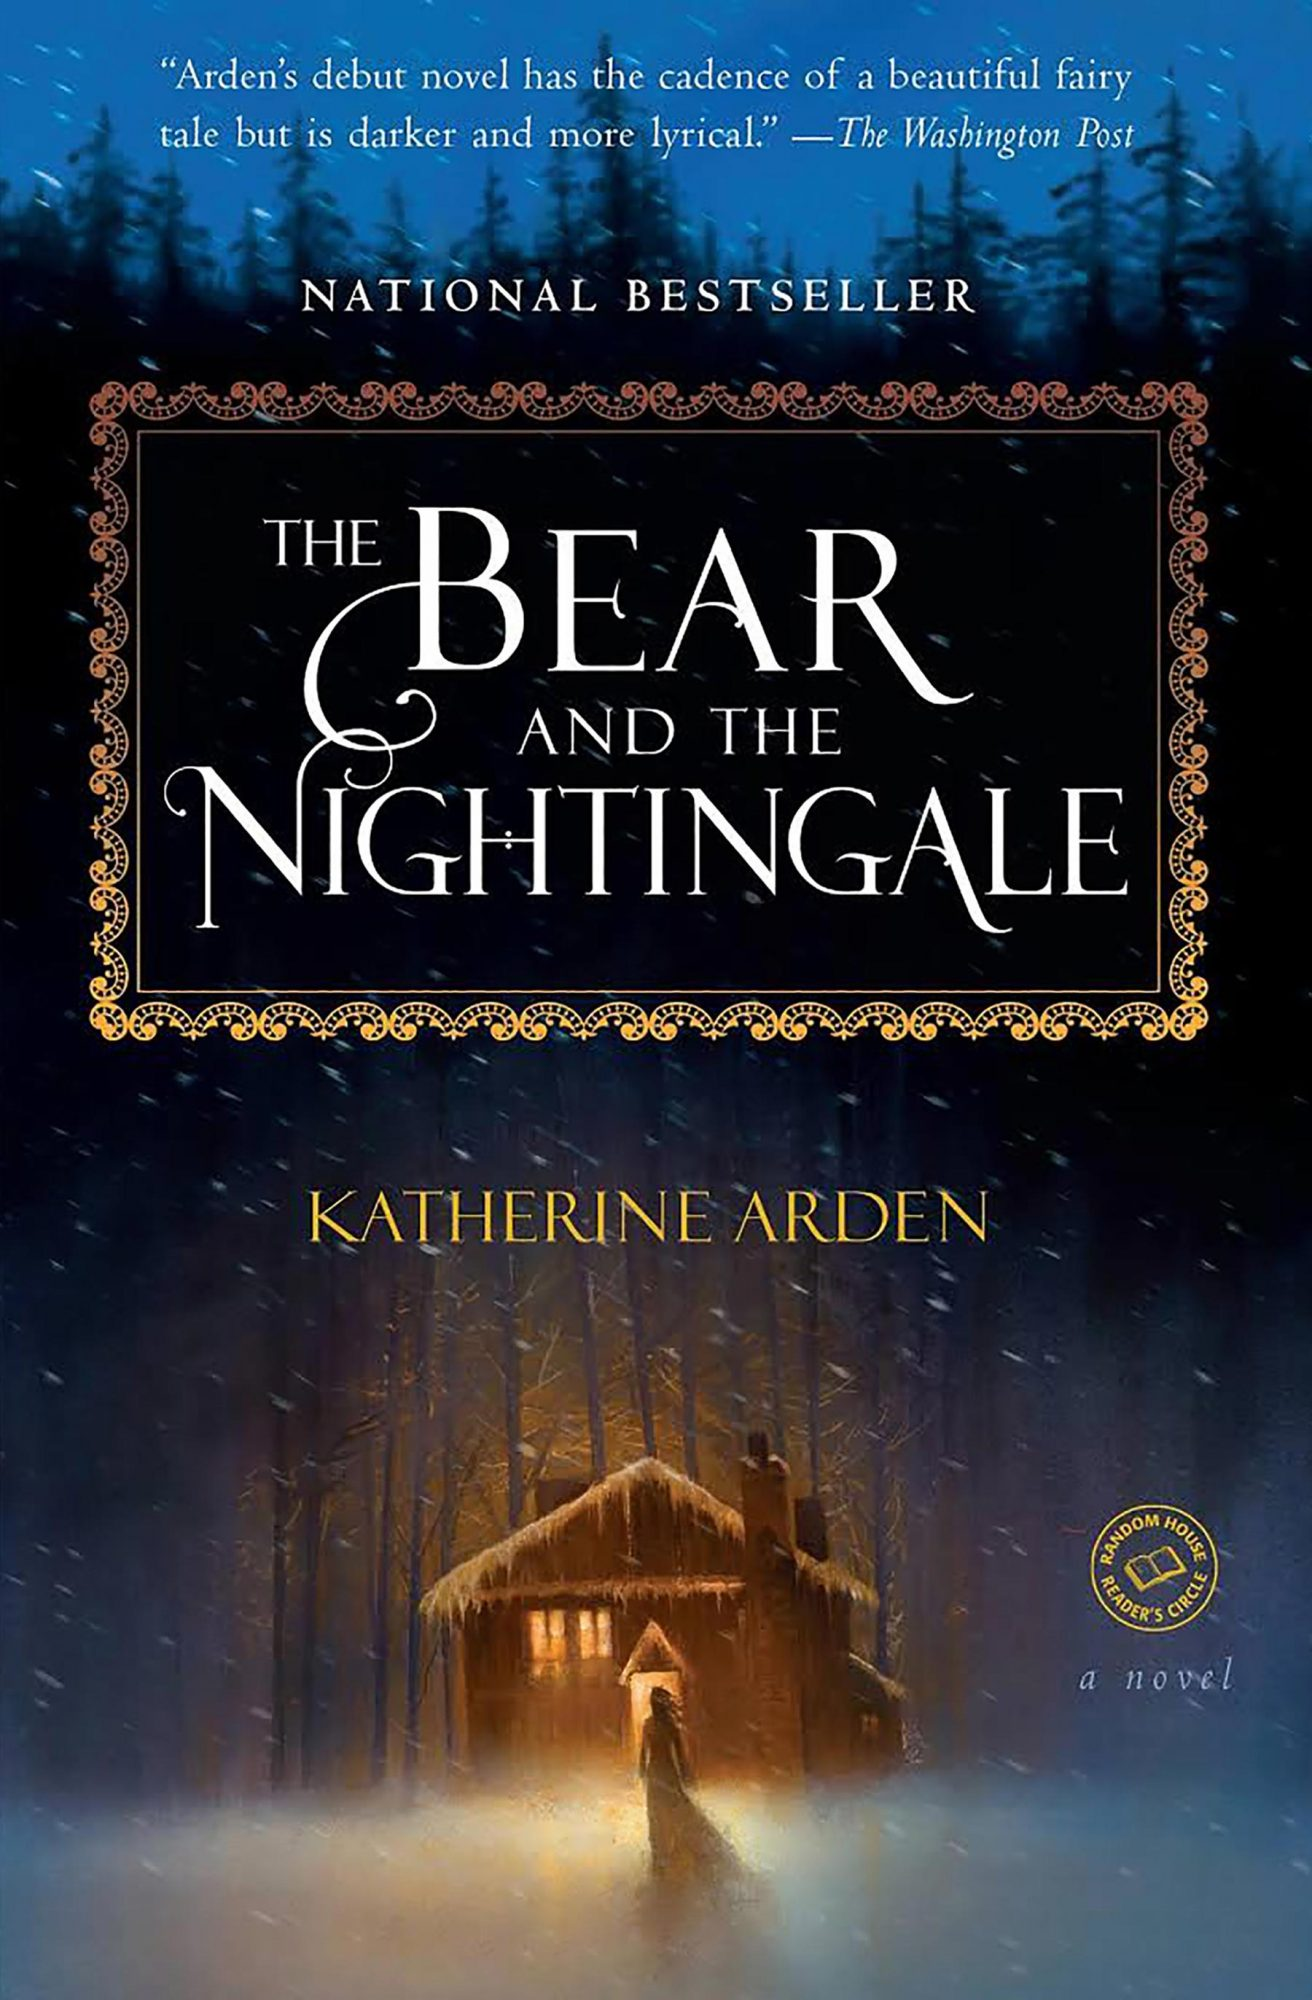 Katherine Arden, The Bear and the Nightingale